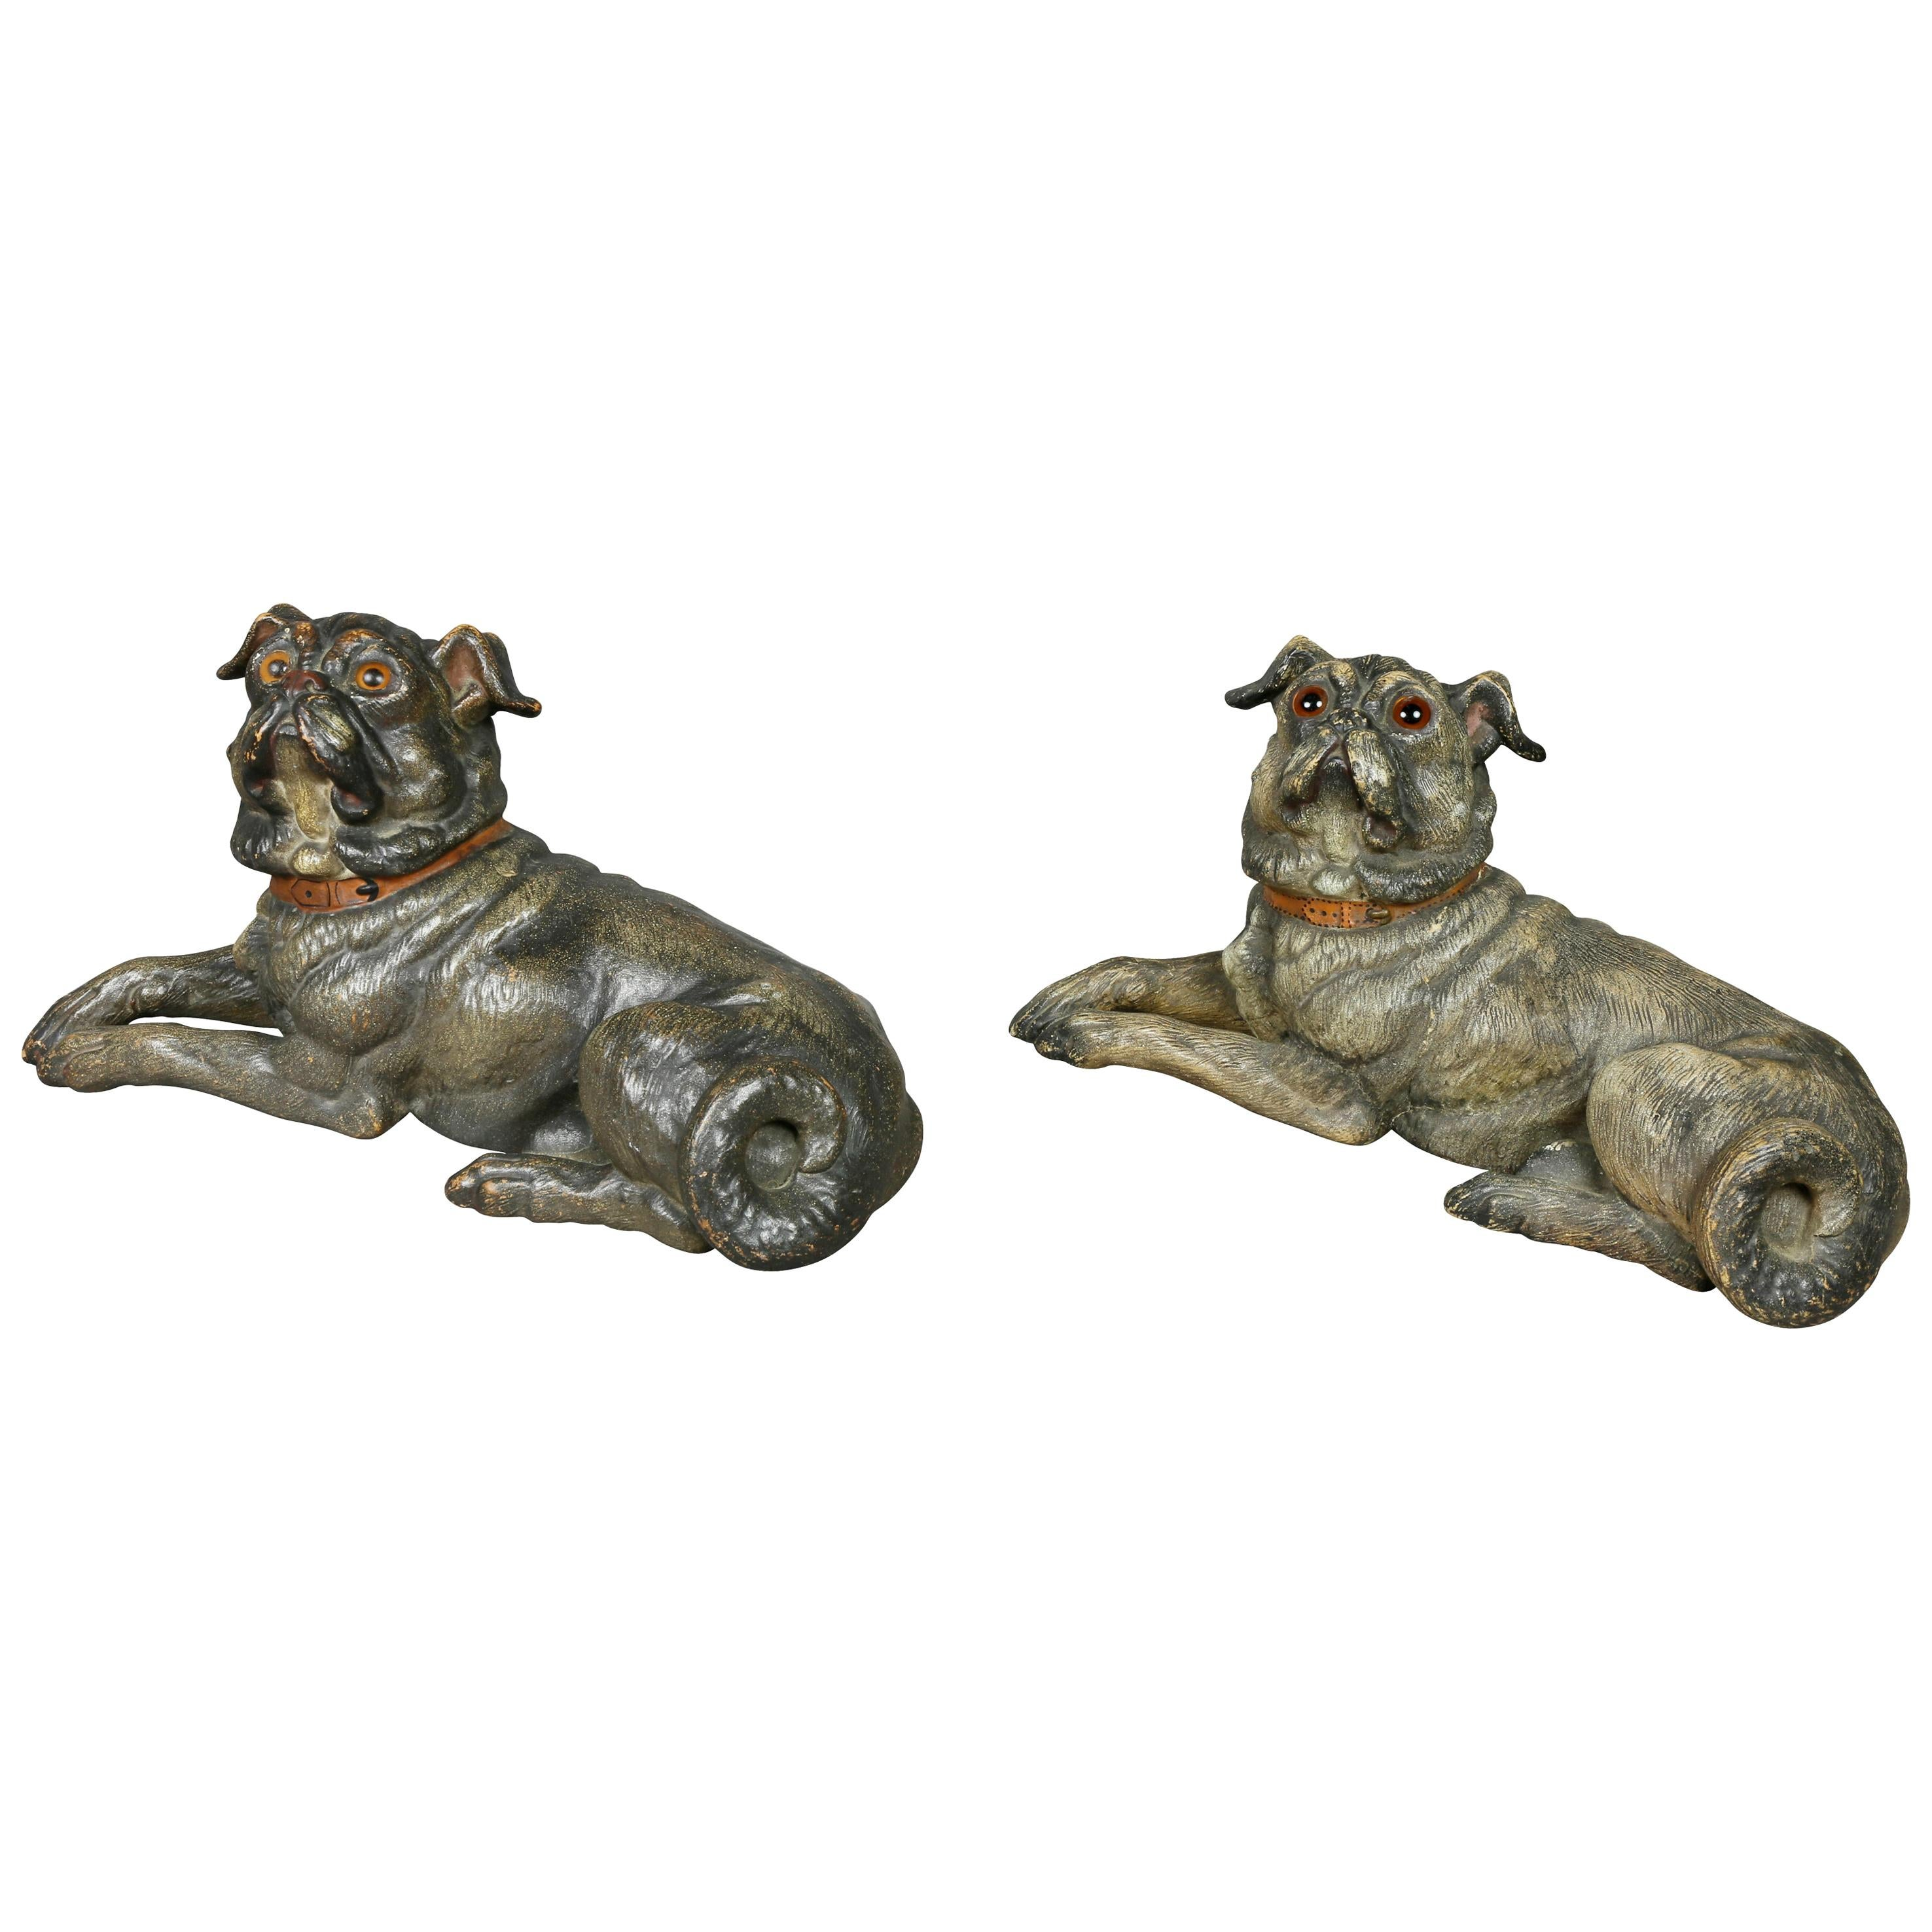 Two Terracotta Figures of Reclining Pug Dogs